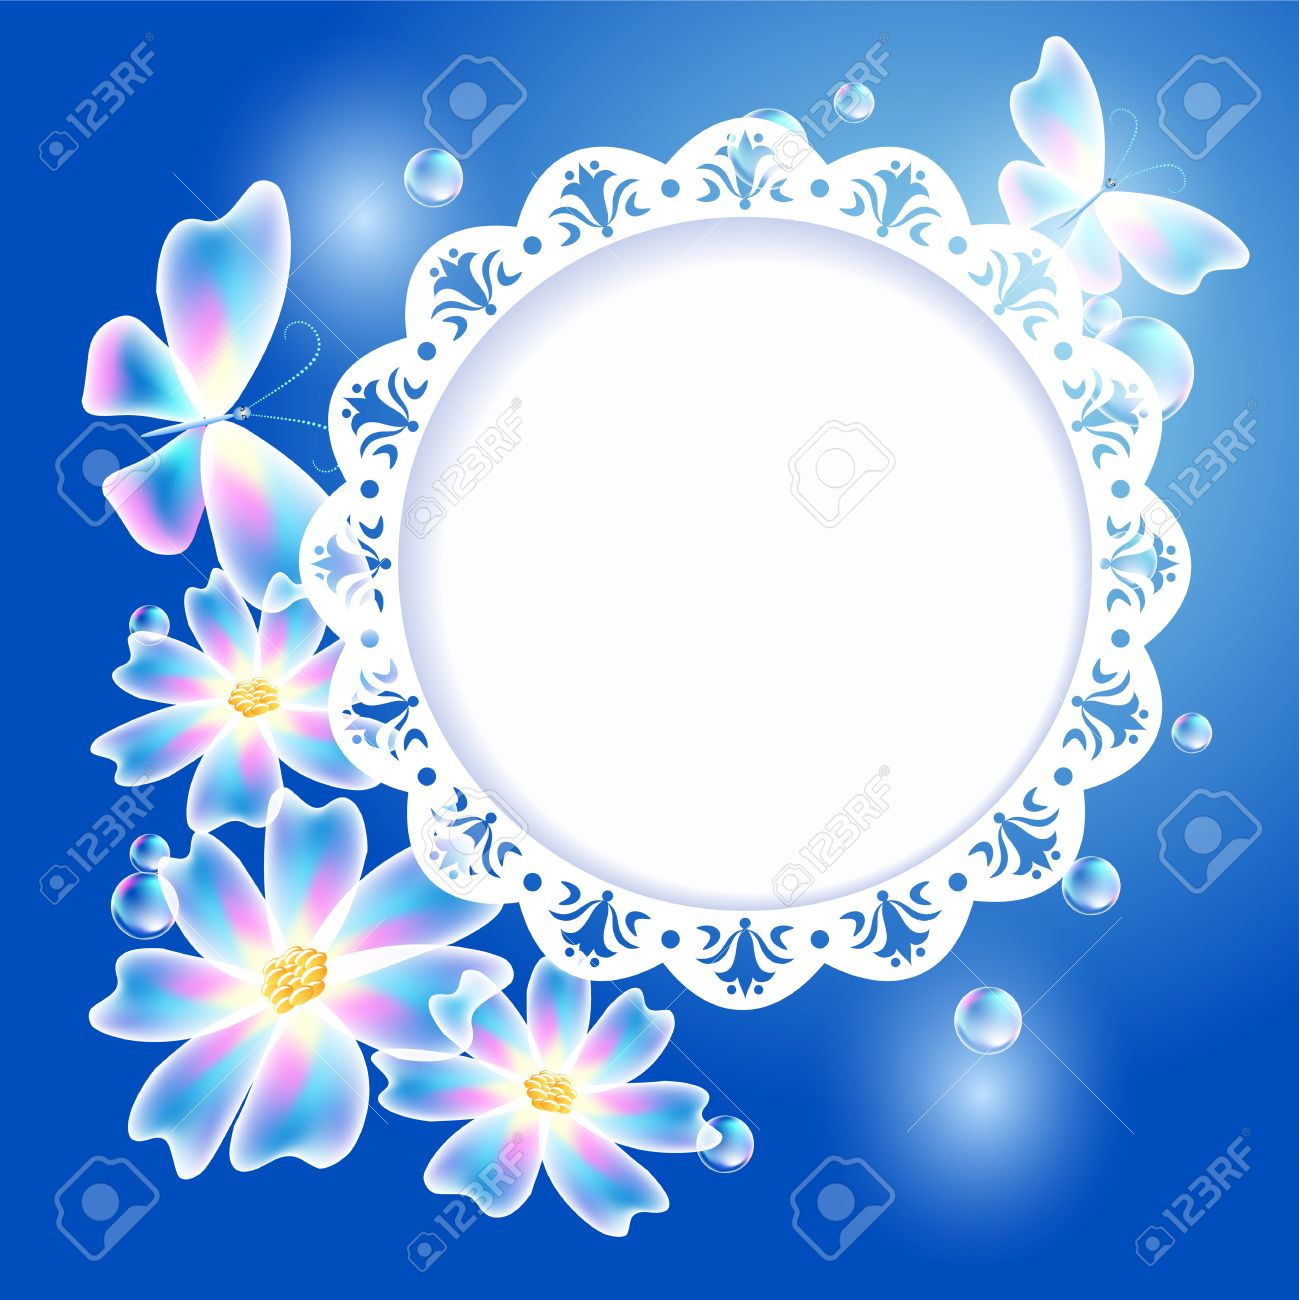 glowing blue background with transparent butterflies flowers